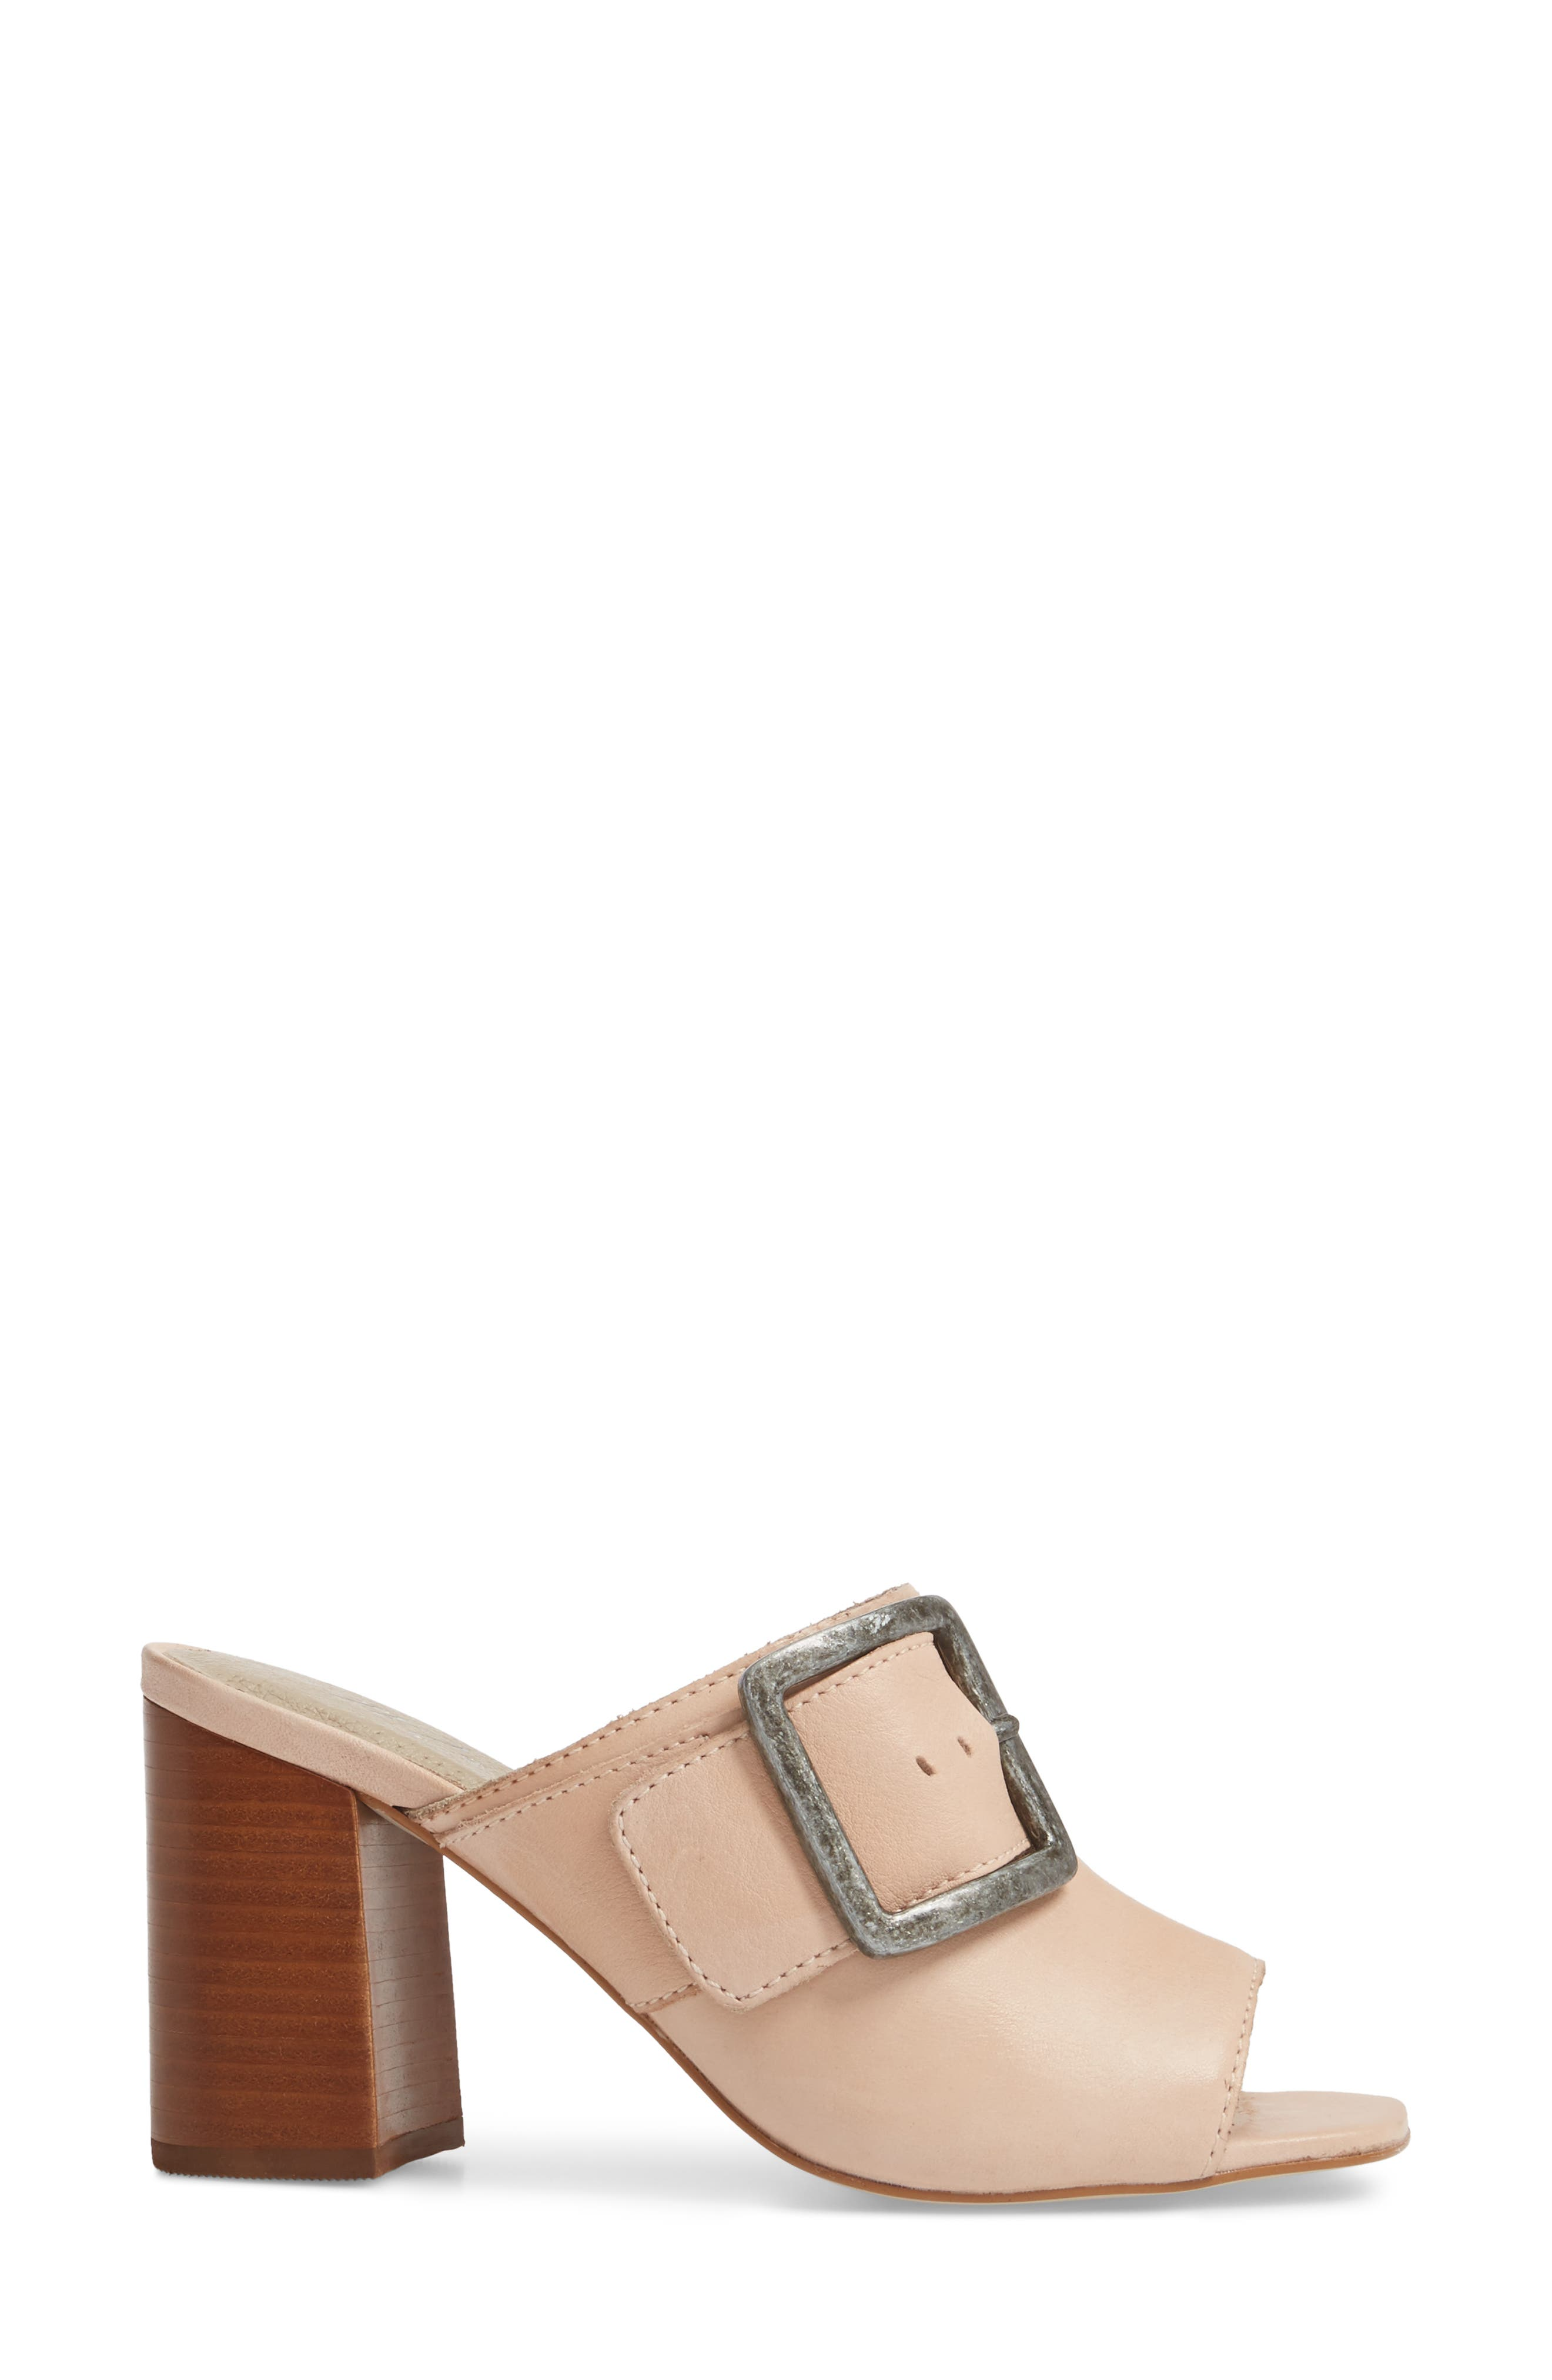 Beatrice Sandal,                             Alternate thumbnail 3, color,                             Nude Leather